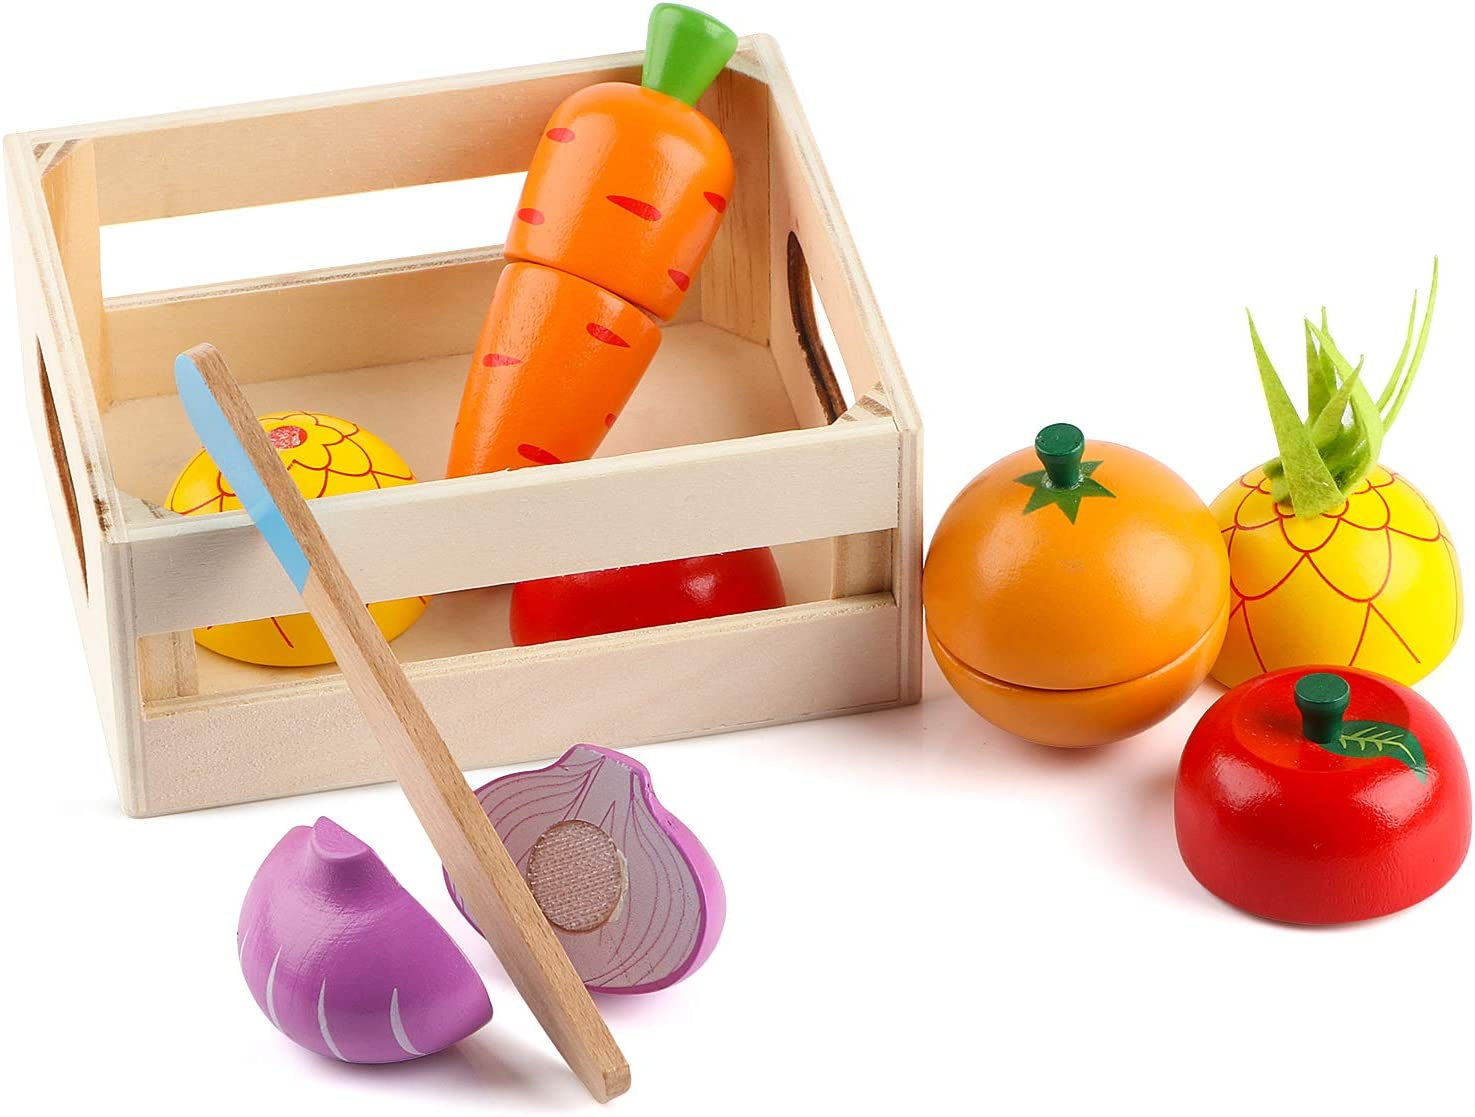 Wondertoys Wooden Food Cutting Toys for Toddlers - Toys Food Vegetables and Fruit for 2 Year Old Boys Girls Cutting Toys Pretend Food for Kids Early Montessori Education